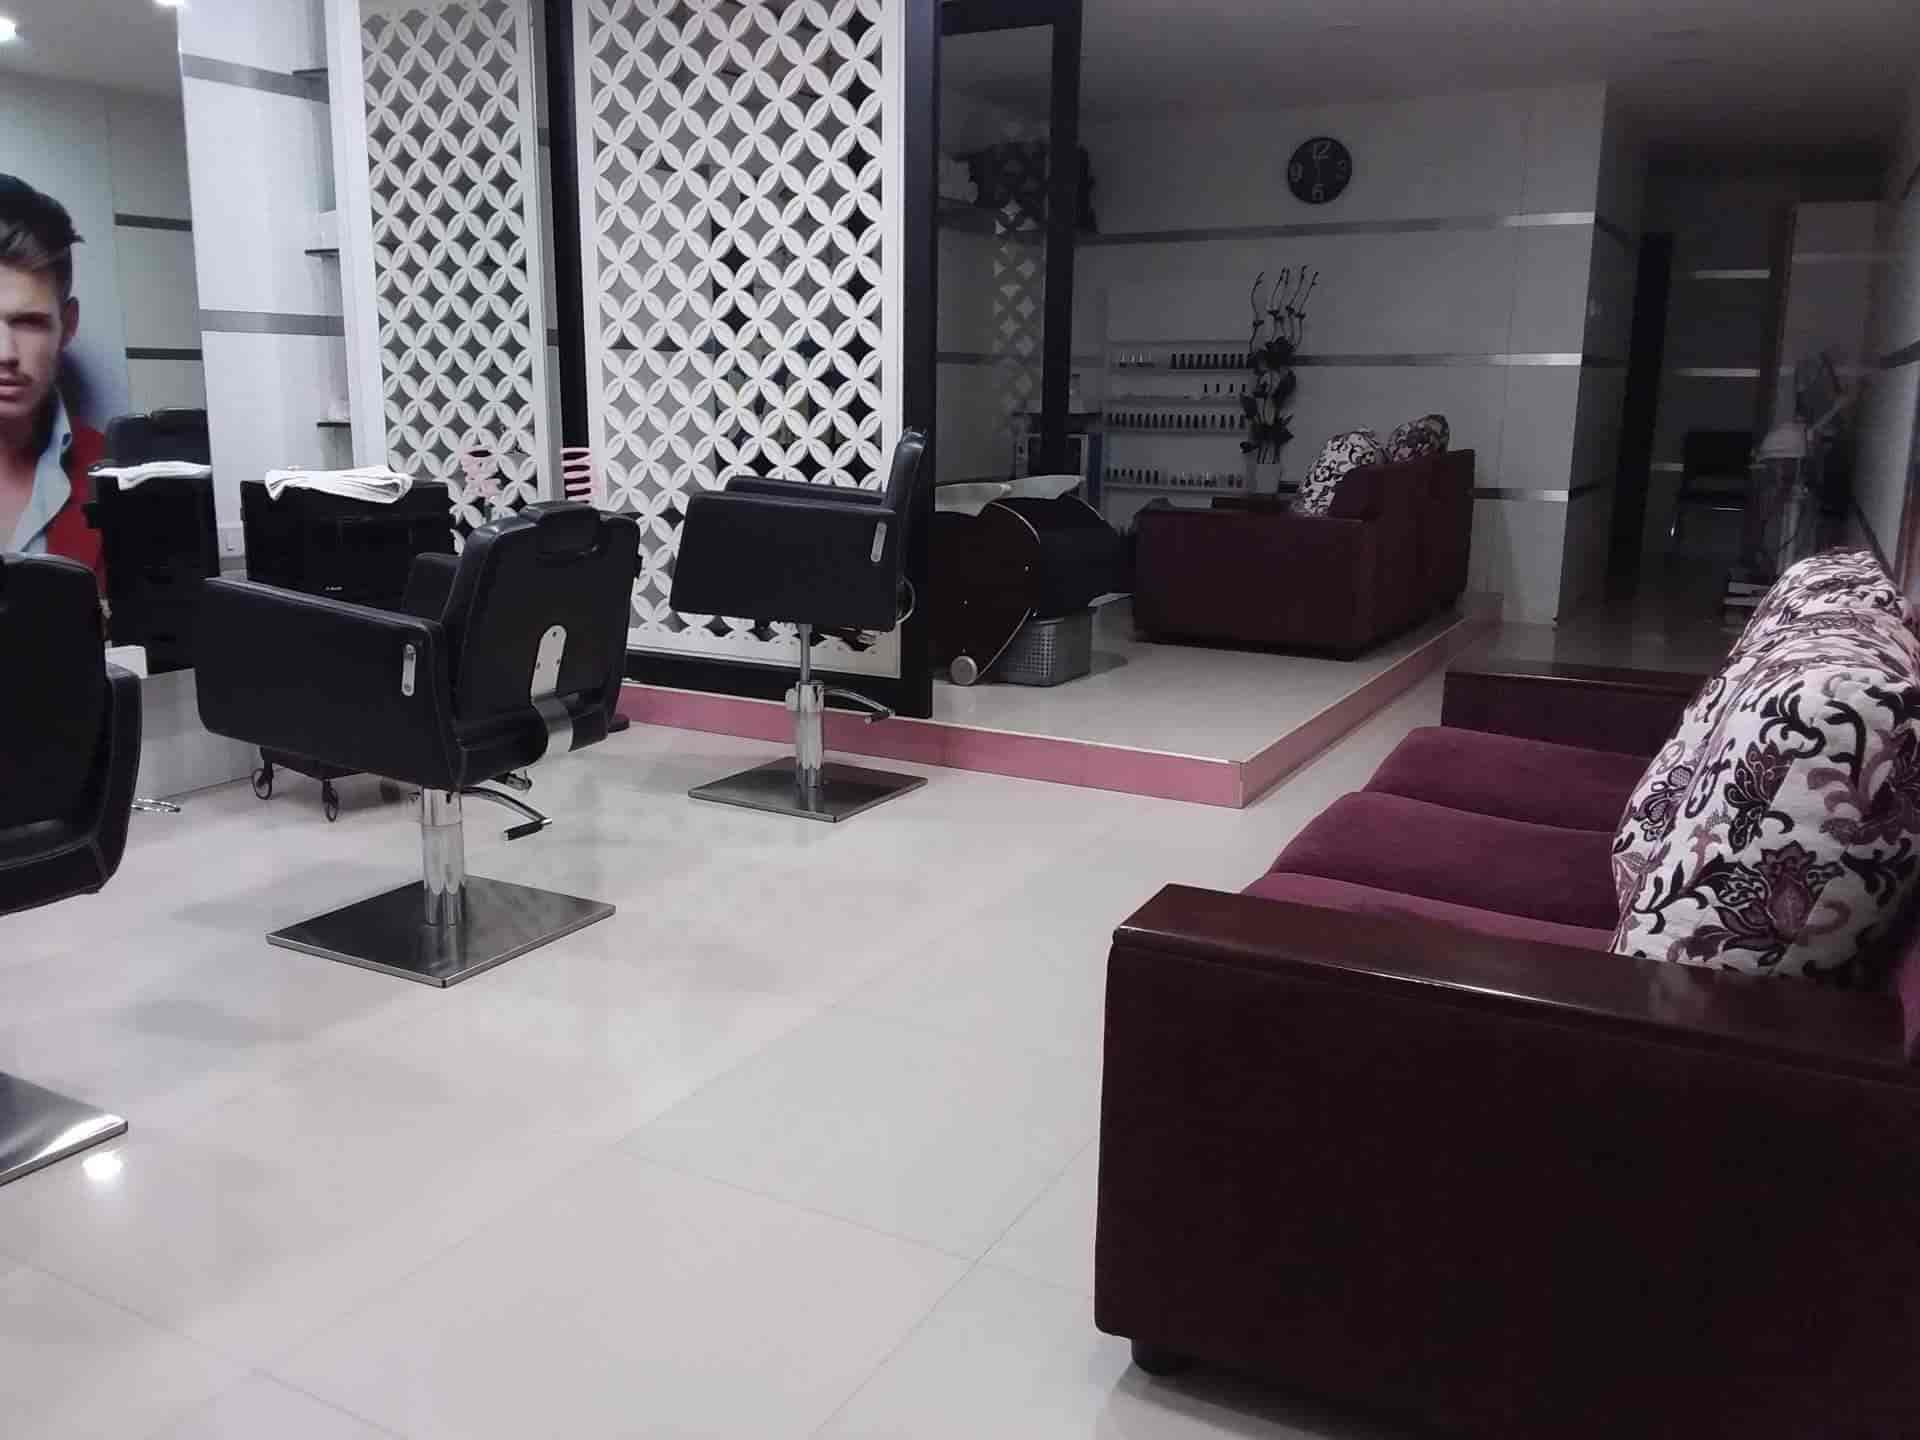 Salon Inspiration Inspirations Hair Salon Photos Gandhi Nagar East Vellore